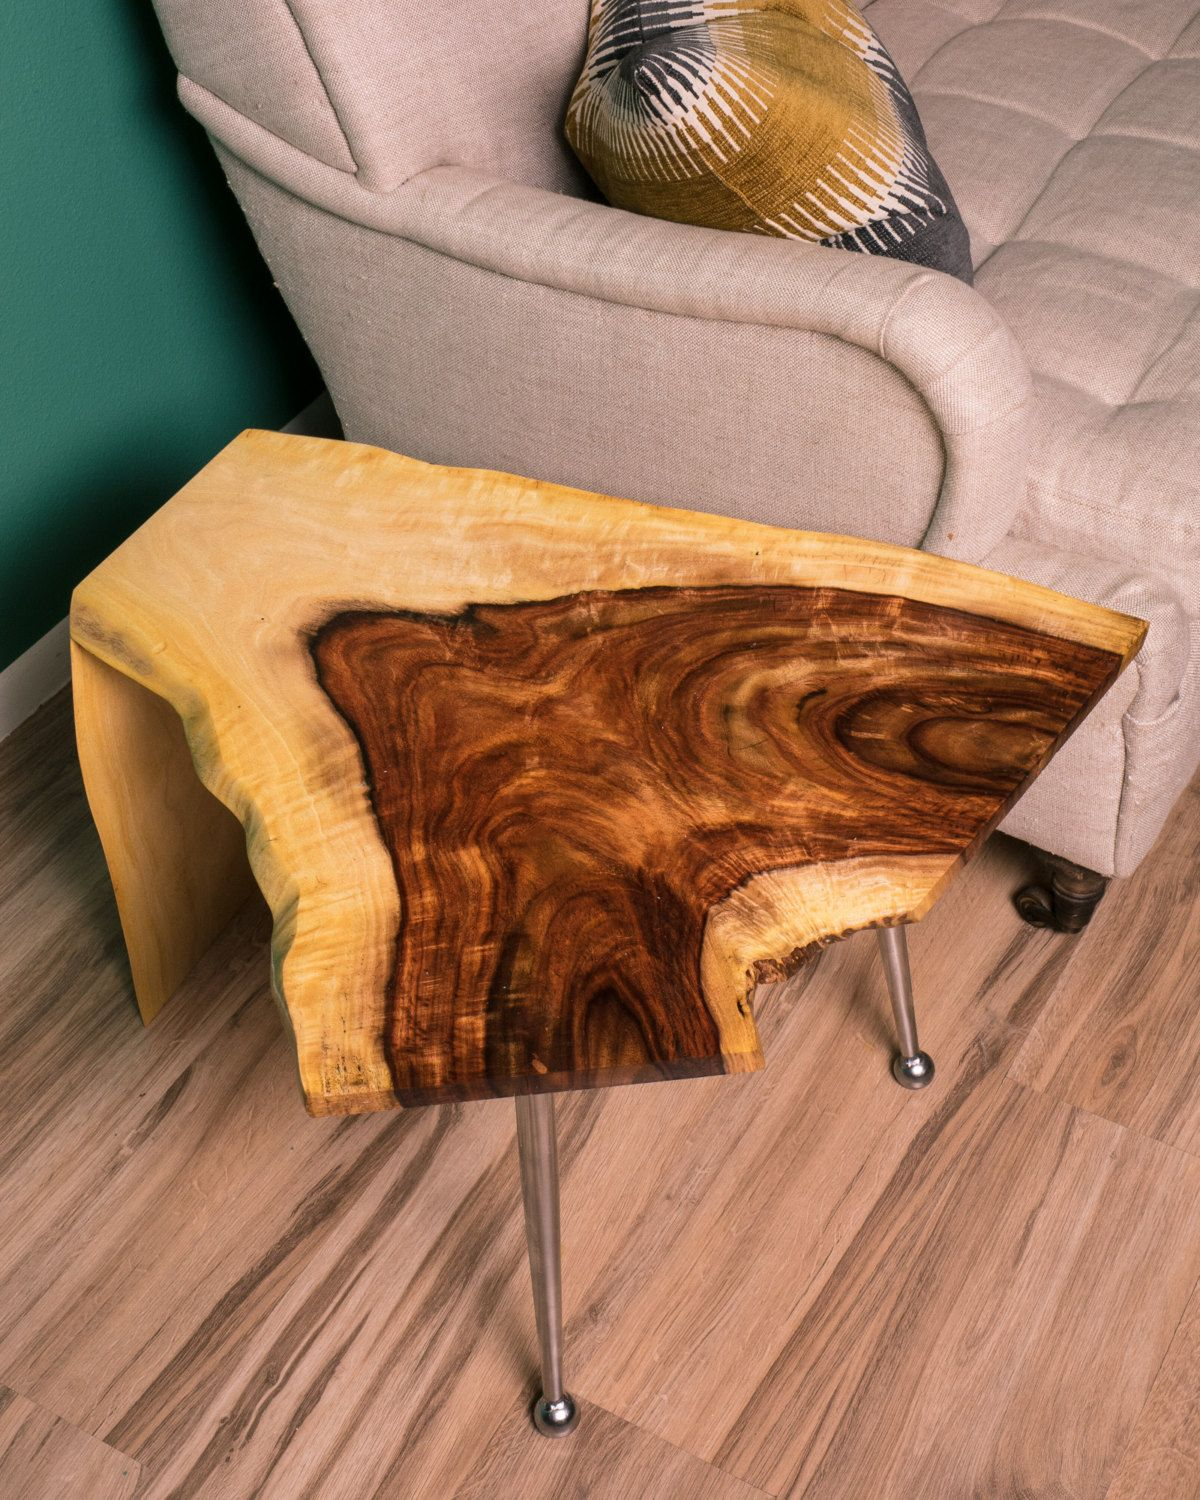 atomic rosewood waterfall live edge end table mezquite accent mid century modern made from repurposed vintage chromecraft sputnik space age style legs mounted slab reclaimed local